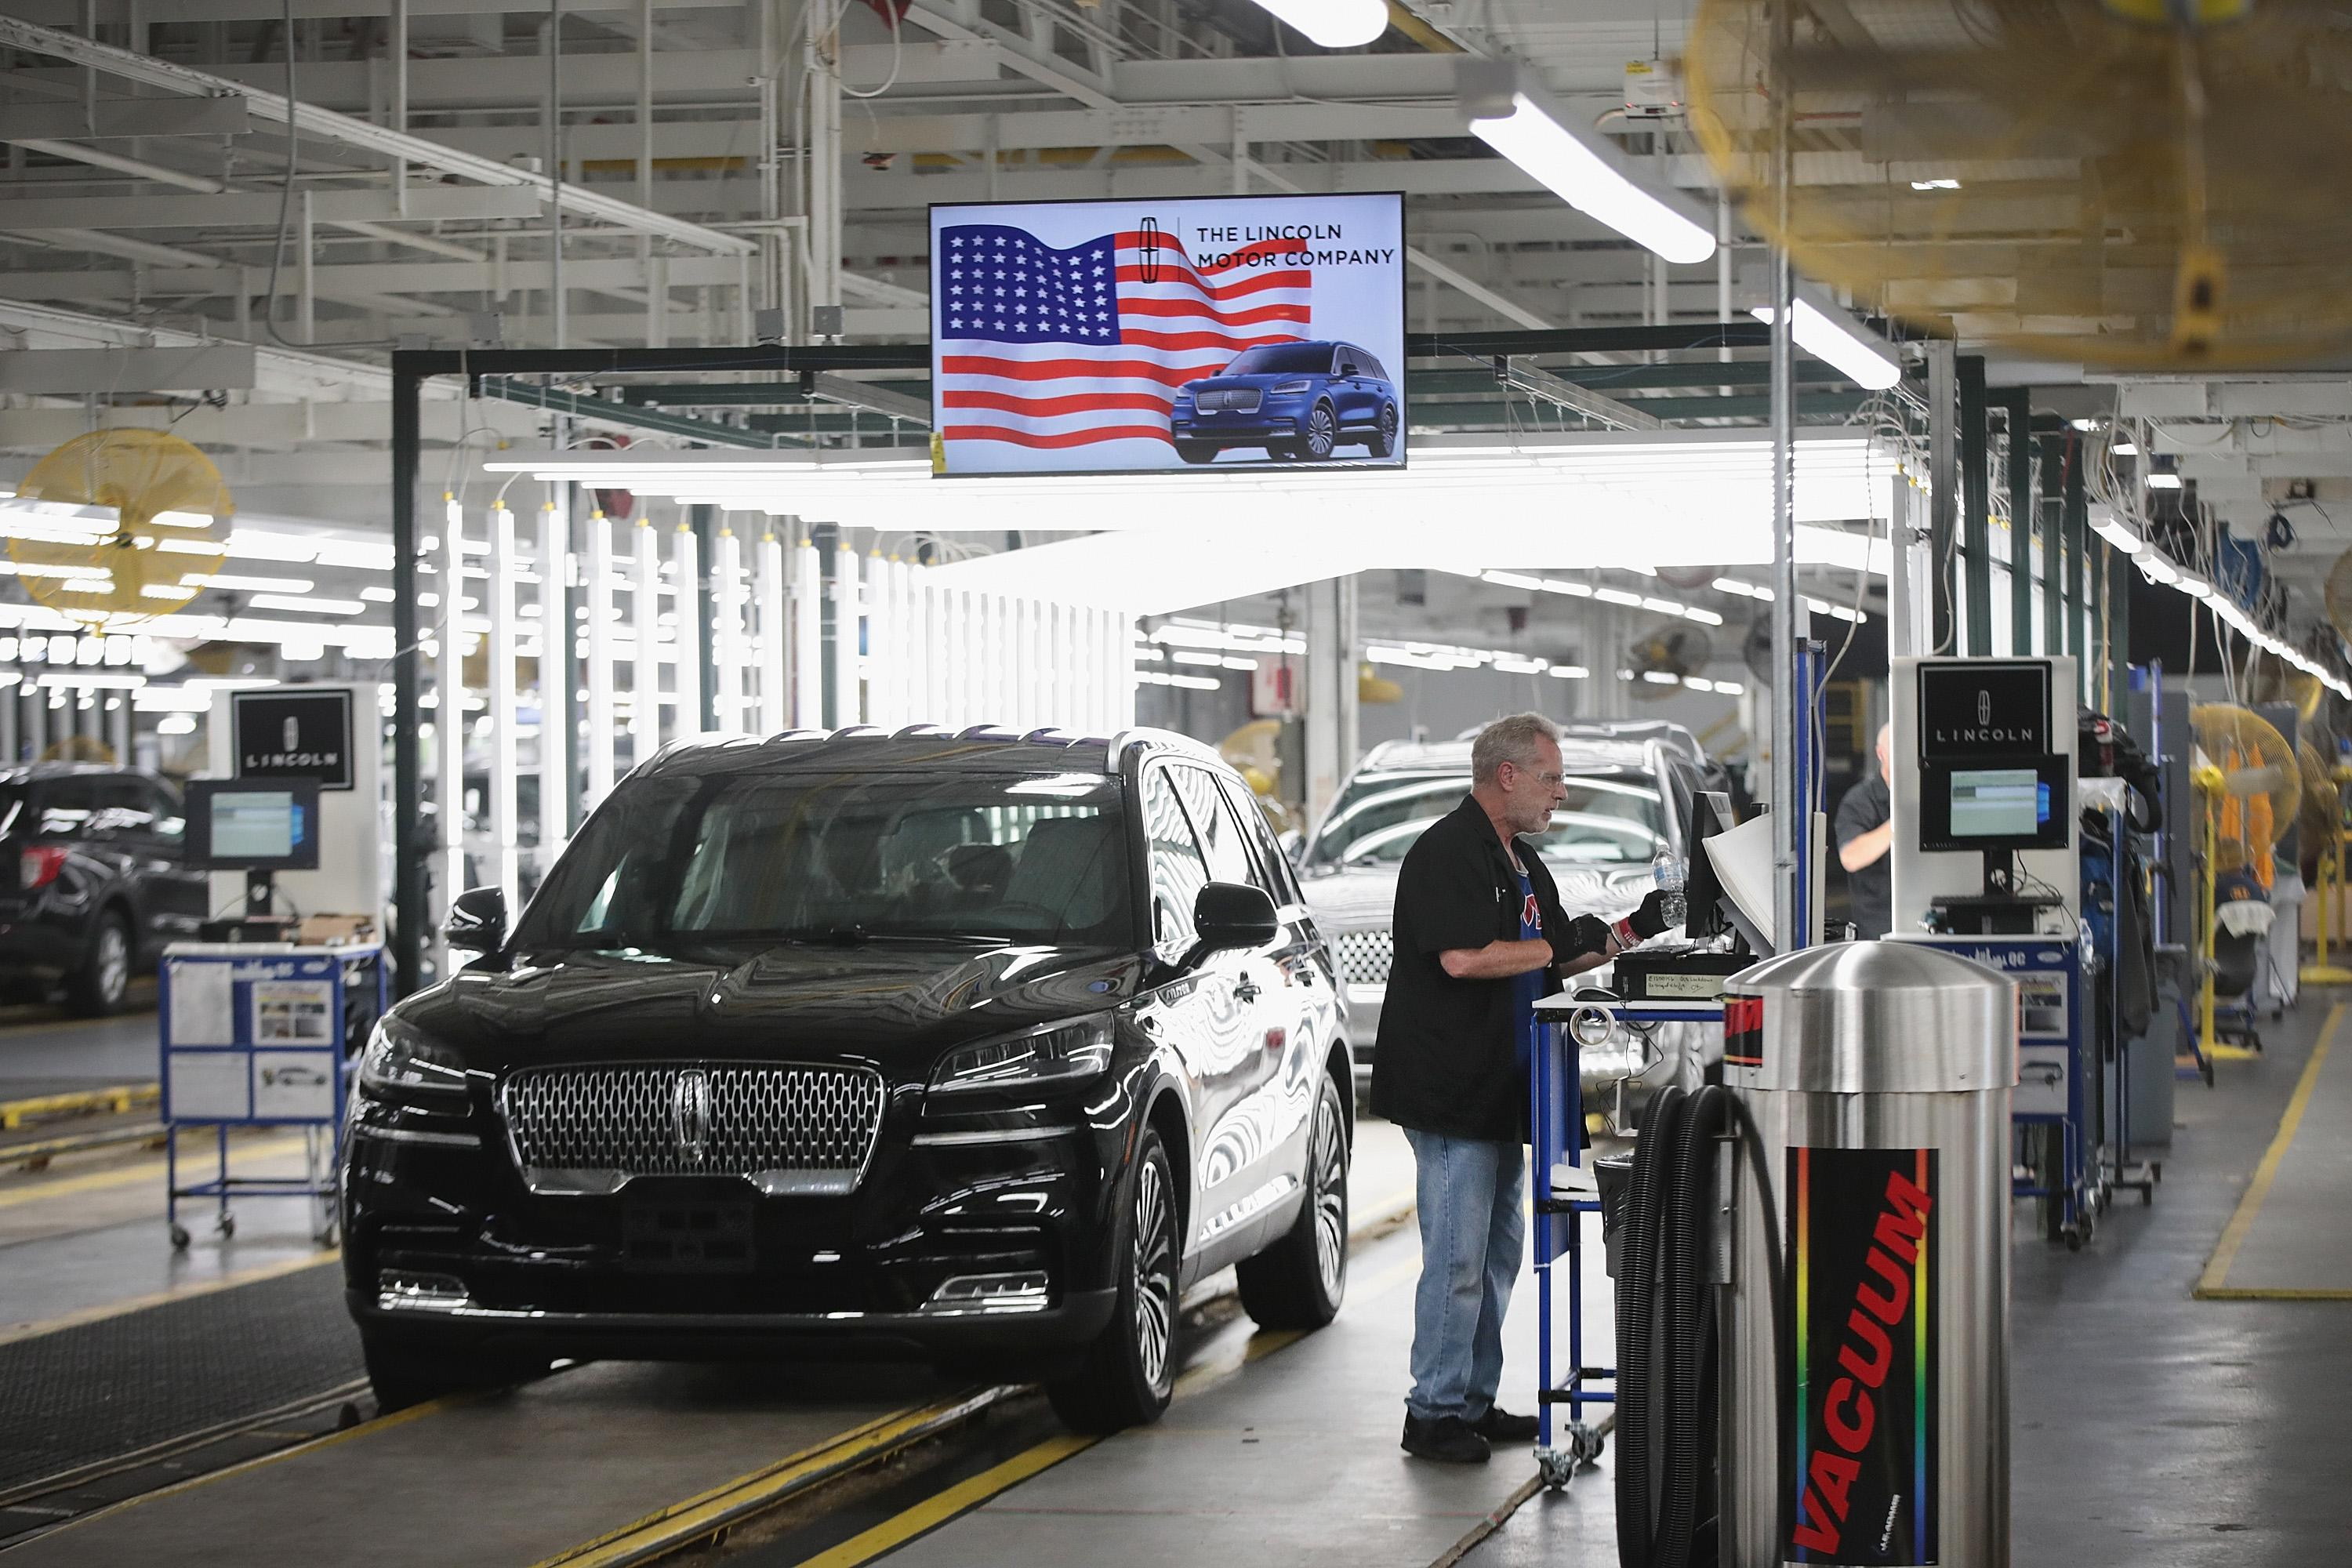 US auto and parts makers want swift resolution to US-China trade differences